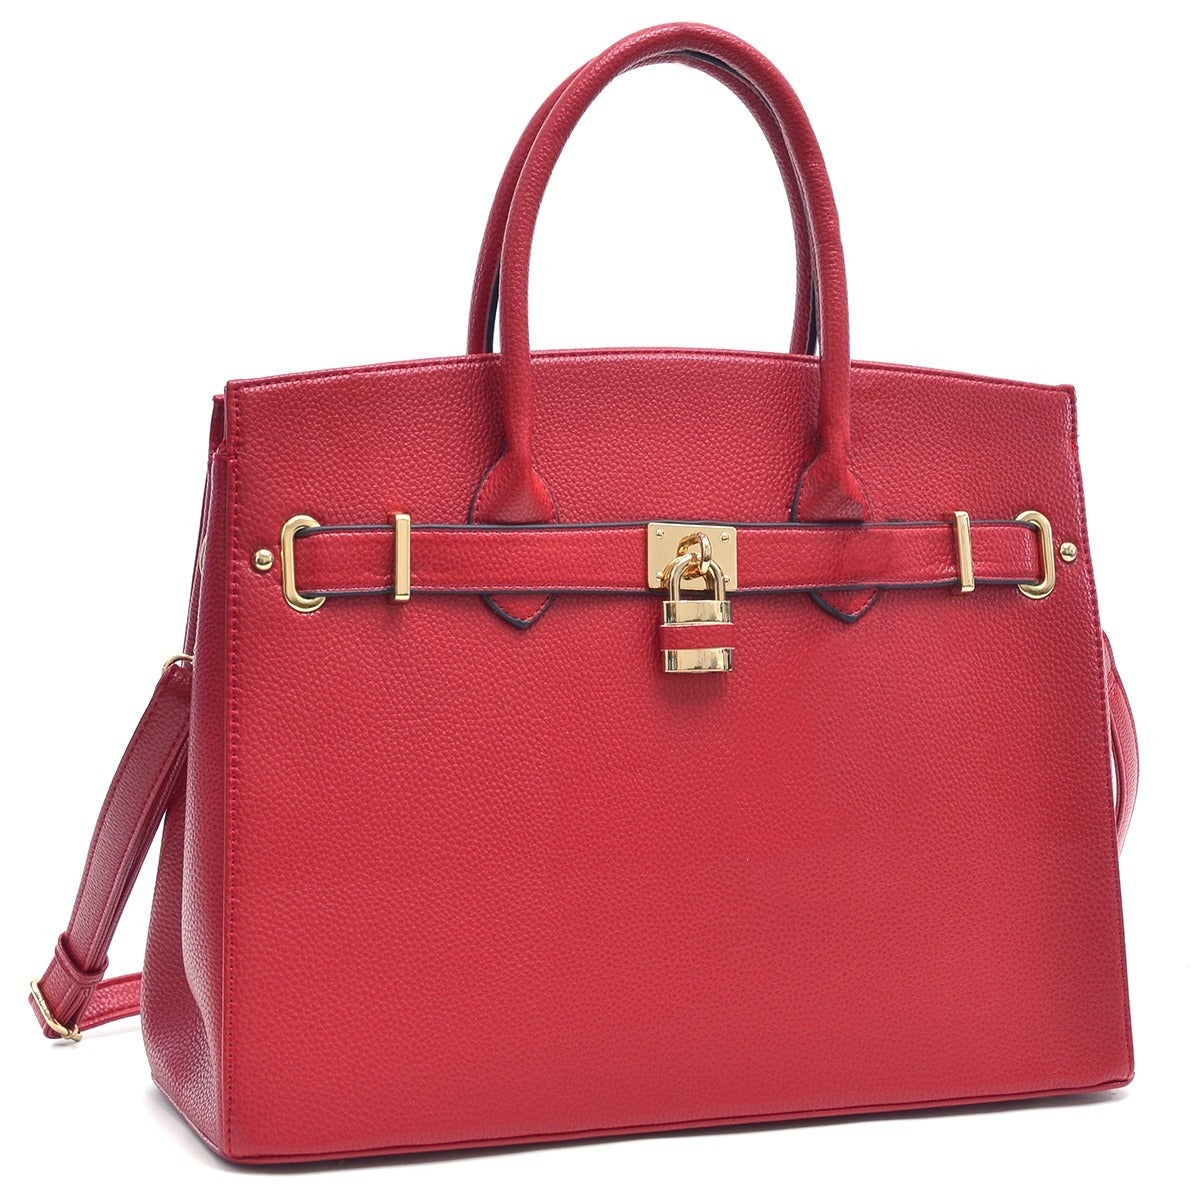 7a19fdc31a Handbags | Shop our Best Clothing & Shoes Deals Online at Overstock